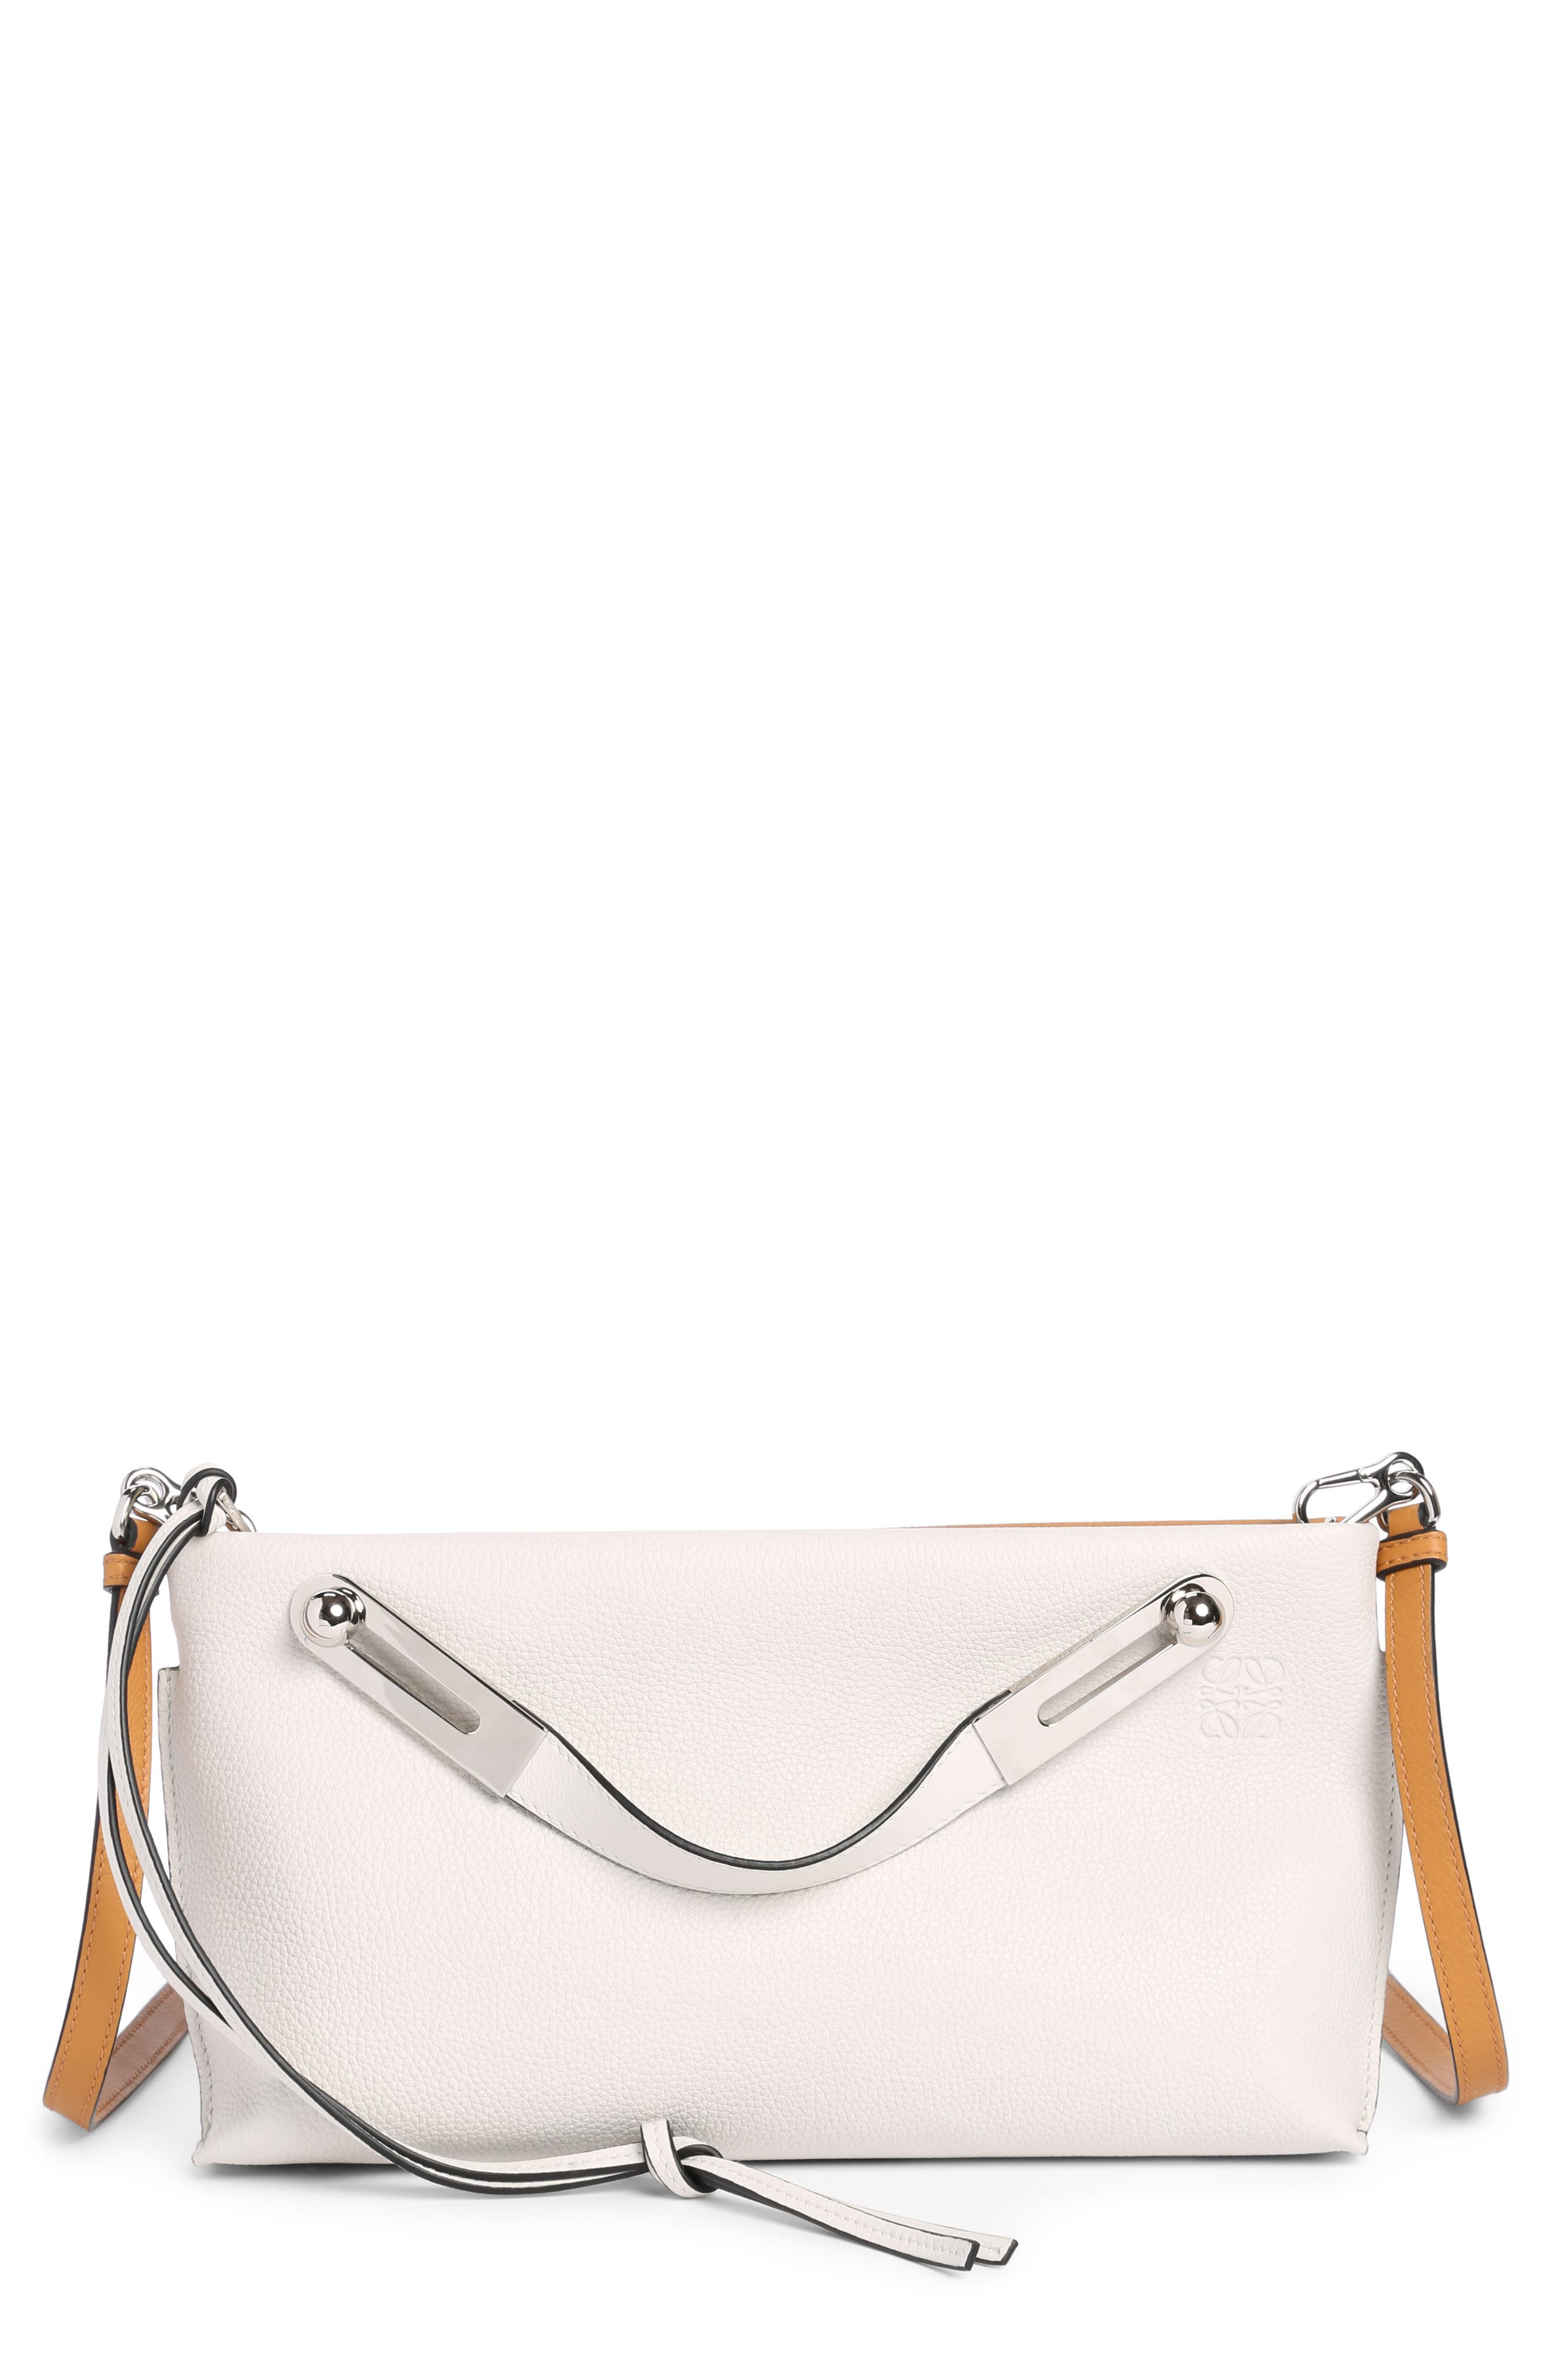 Loewe Small Missy Calfskin Leather Crossbody Bag